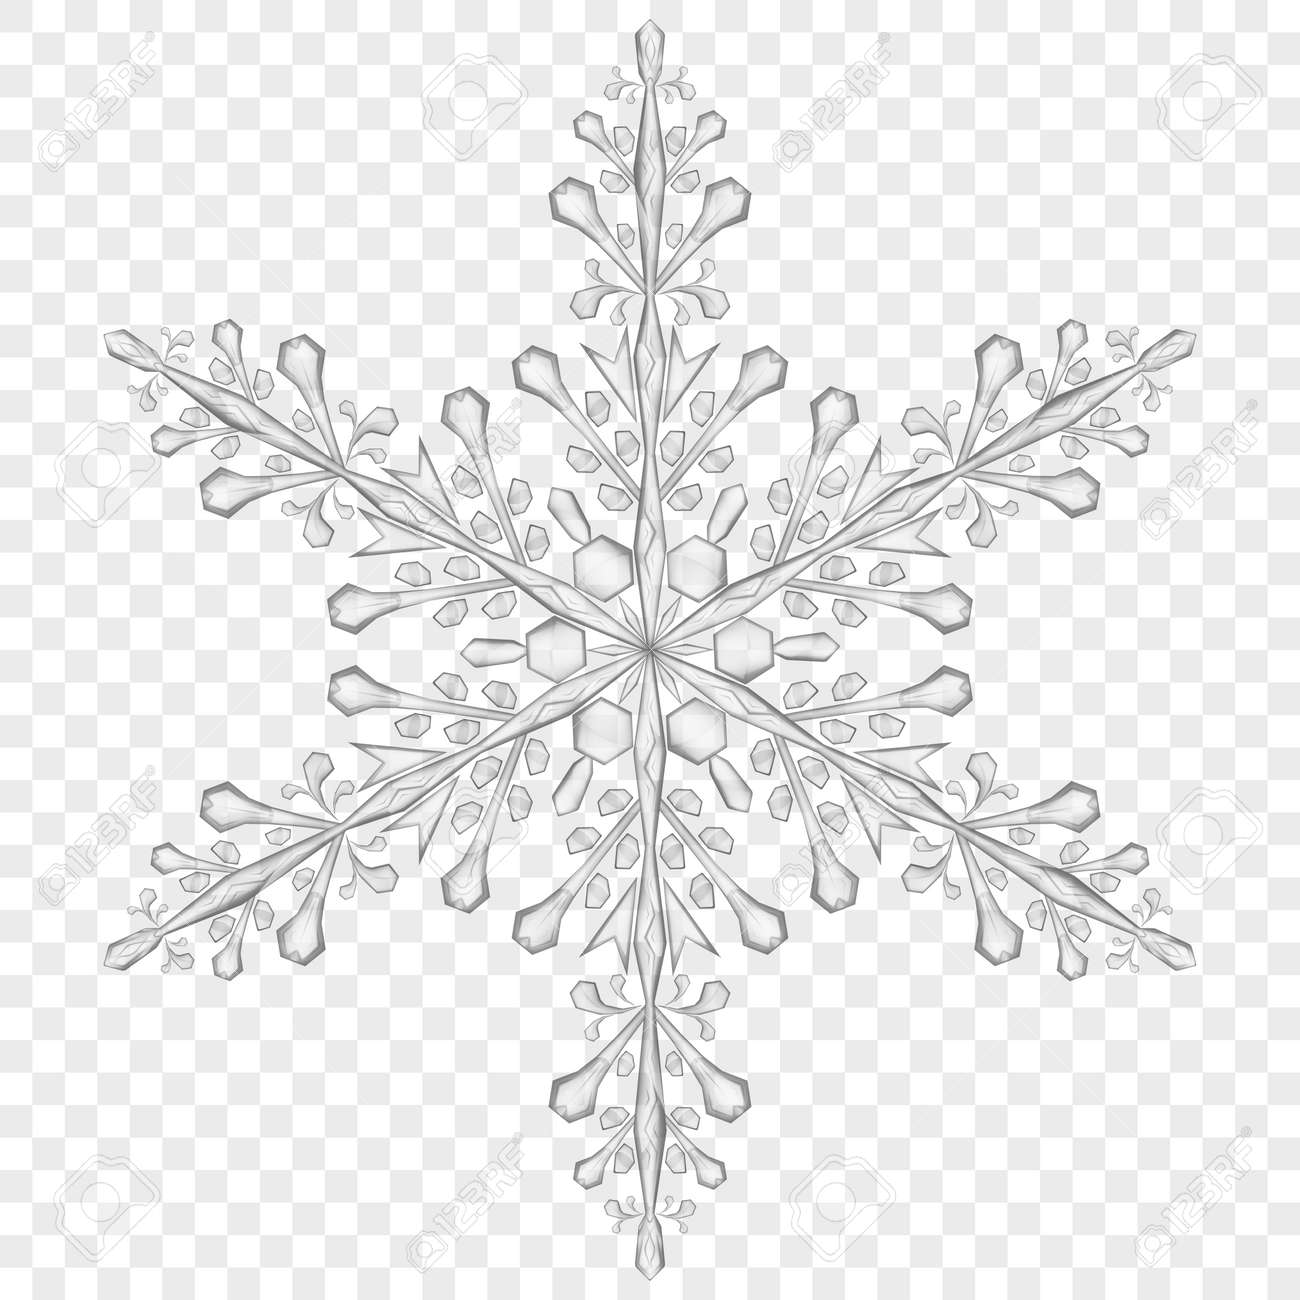 Big Translucent Christmas Snowflake In Gray Colors On Transparent ... for Snowflake Clipart Transparent Background  45hul